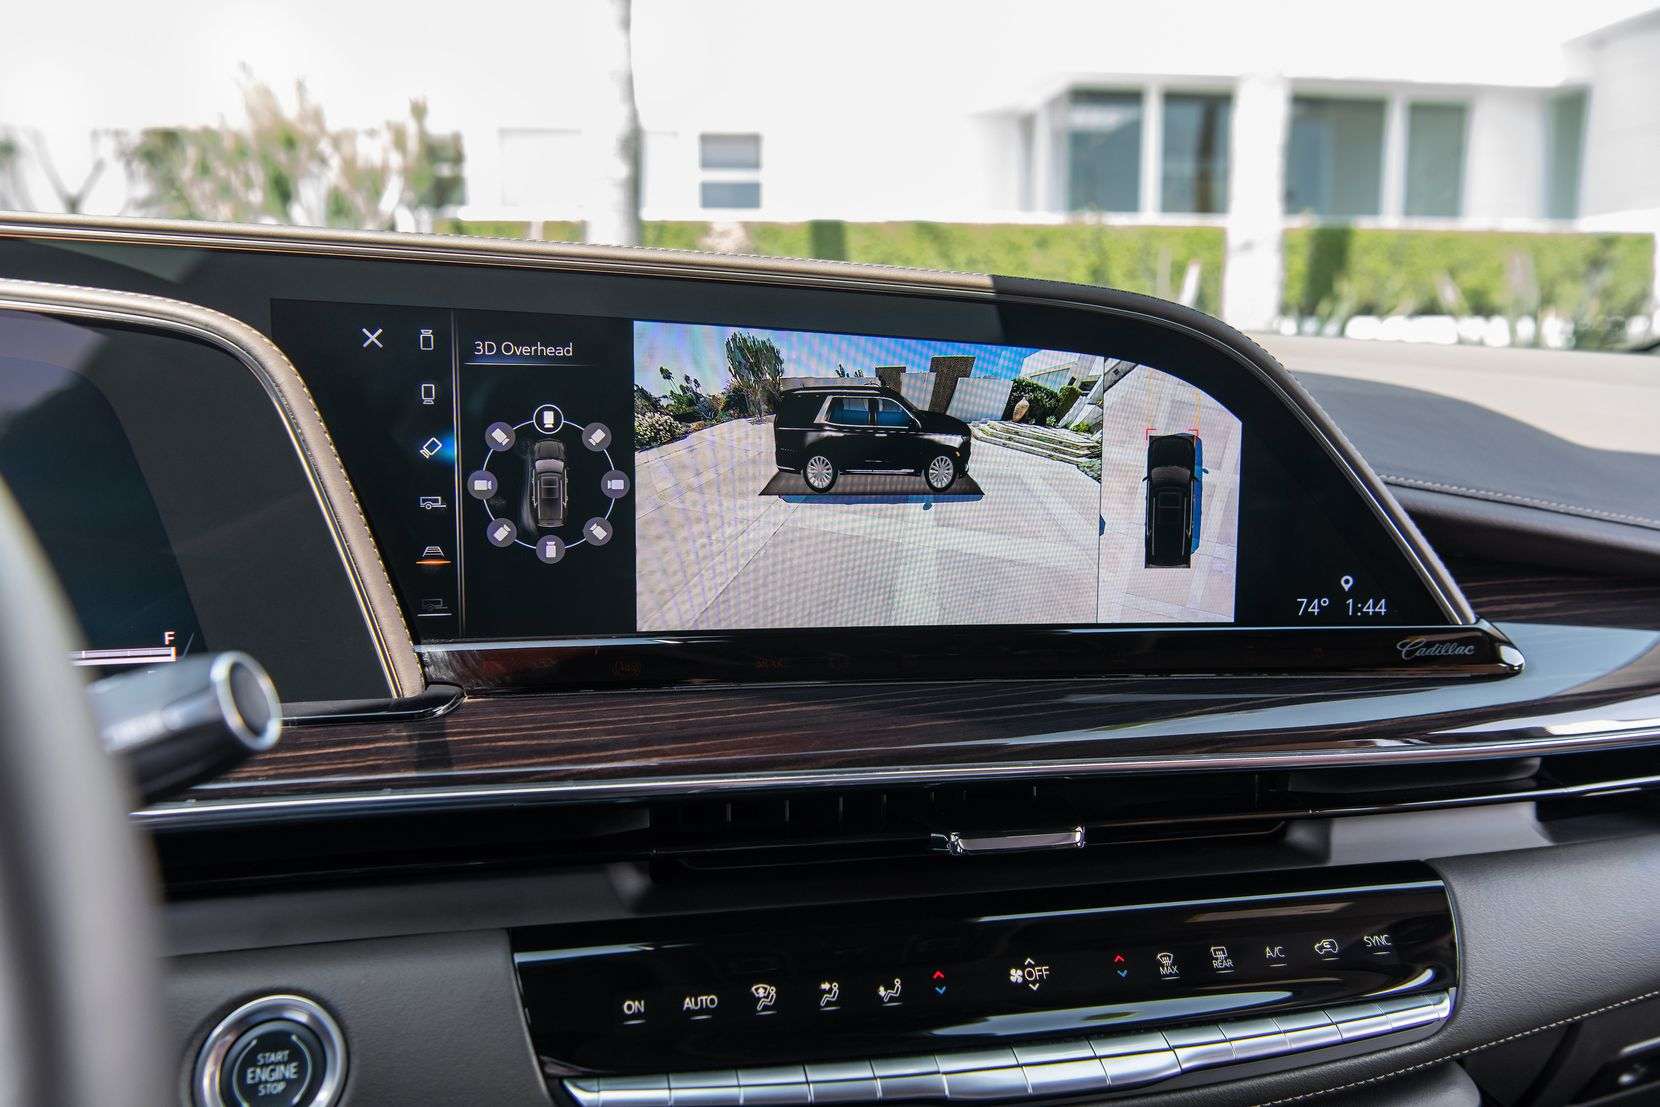 """The OLED display in the 2021 Escalade includes a 16.9"""" diagonal infotainment screen that displays and controls navigation, music, and many other functions of the vehicle, including HD Surround vision, which uses multiple camera angles to display an overhead image of the area round the vehicle."""